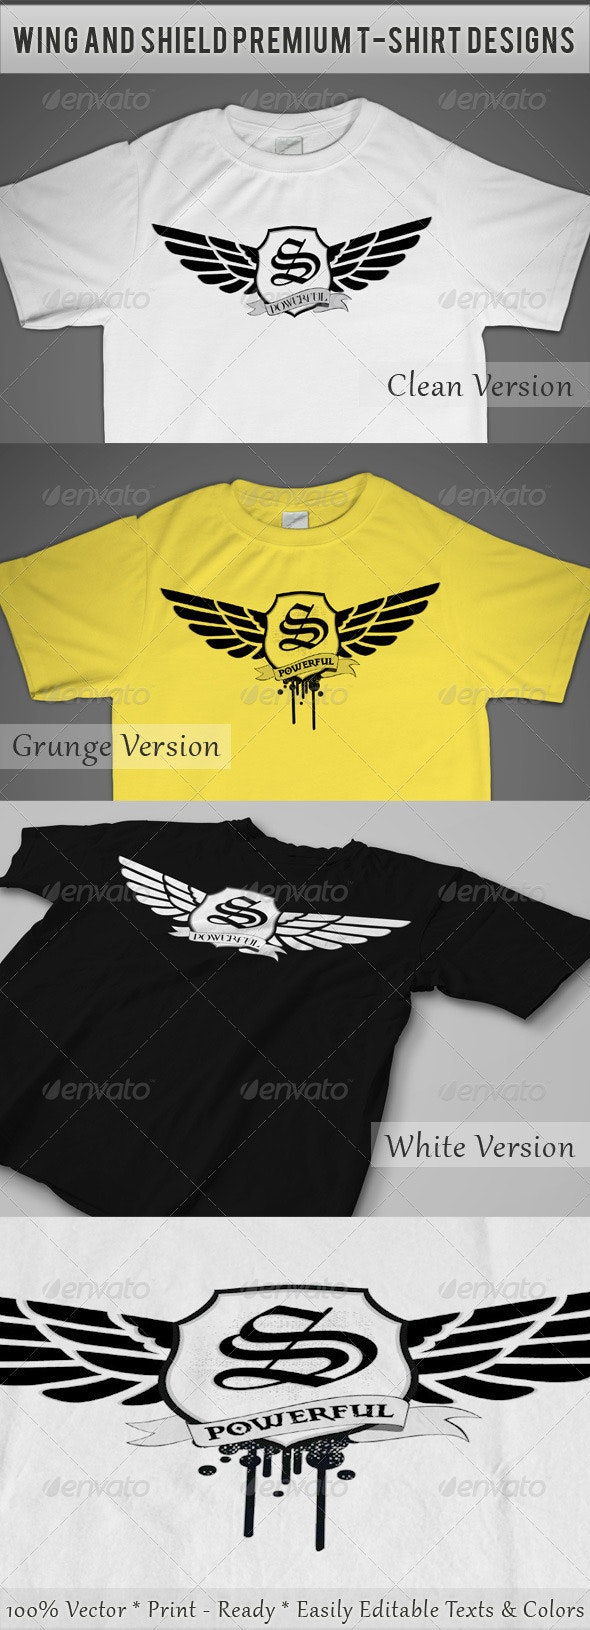 Wing and Shield Premium T-Shirt Designs - Designs T-Shirts